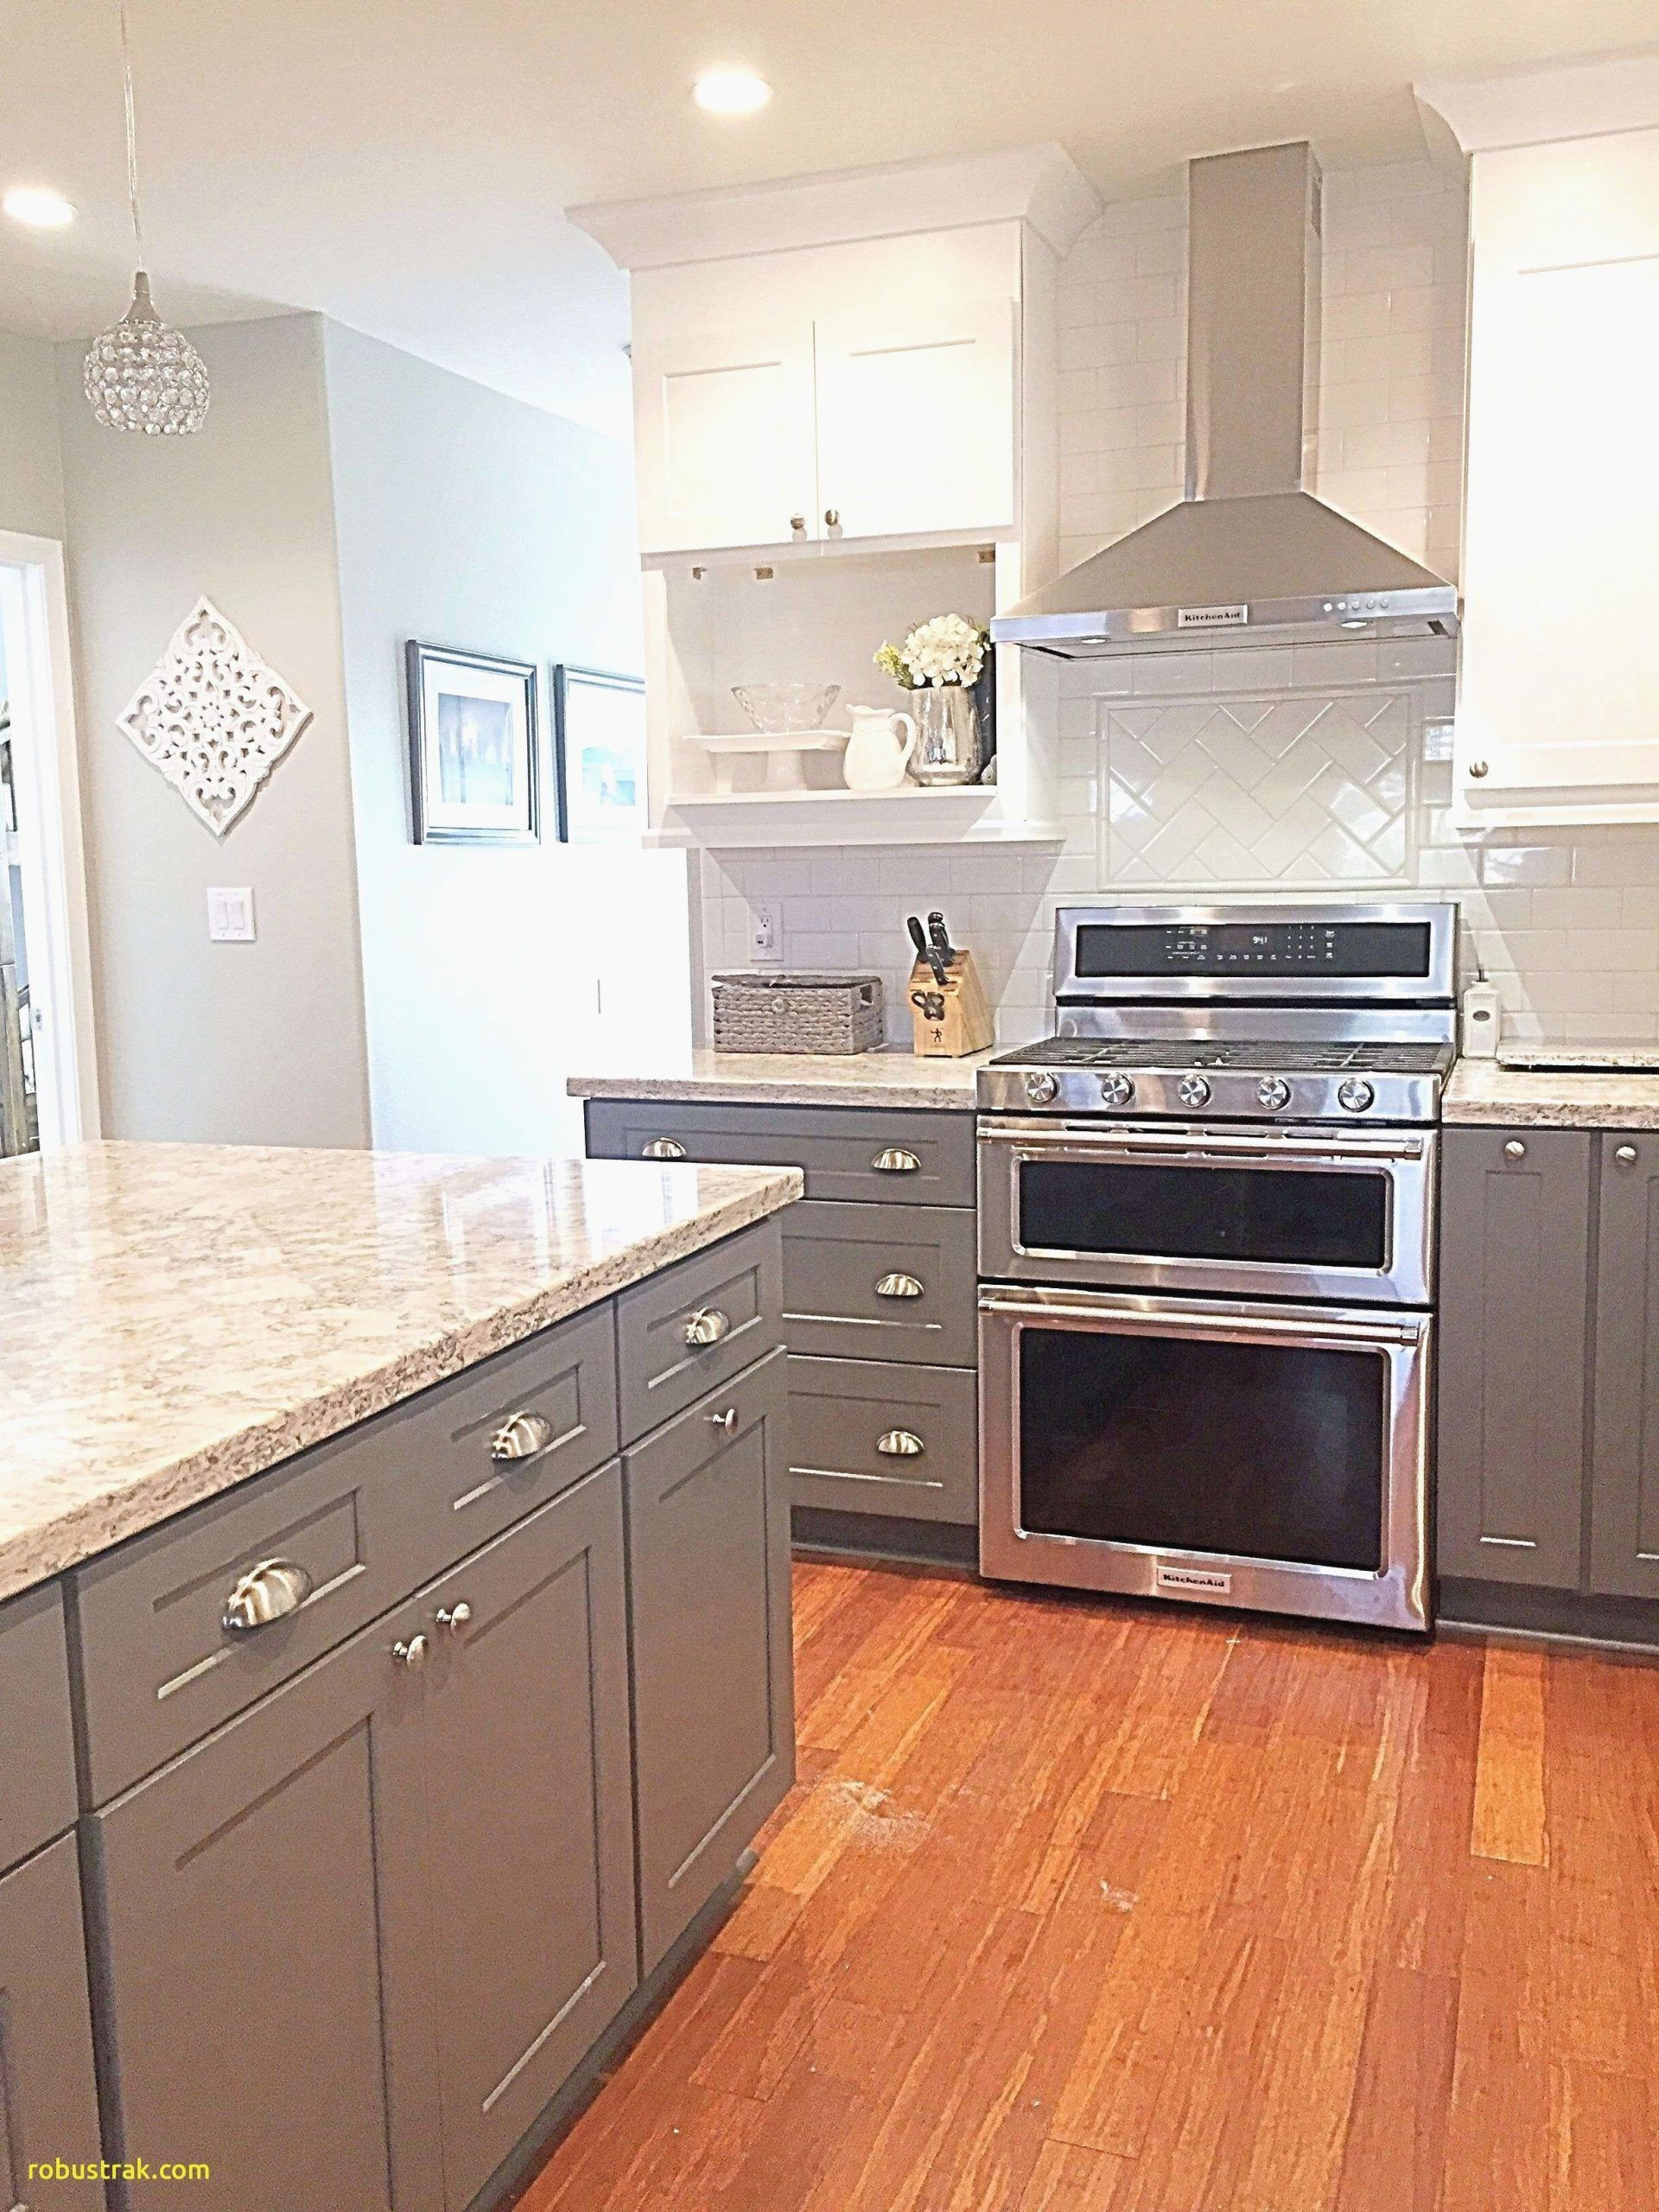 A Beautiful Combination Of Stone Dark Cabinetry And Oak In This Sophisticated Family Minimalist Kitchen Design Modern Kitchen Interiors Modern Kitchen Design